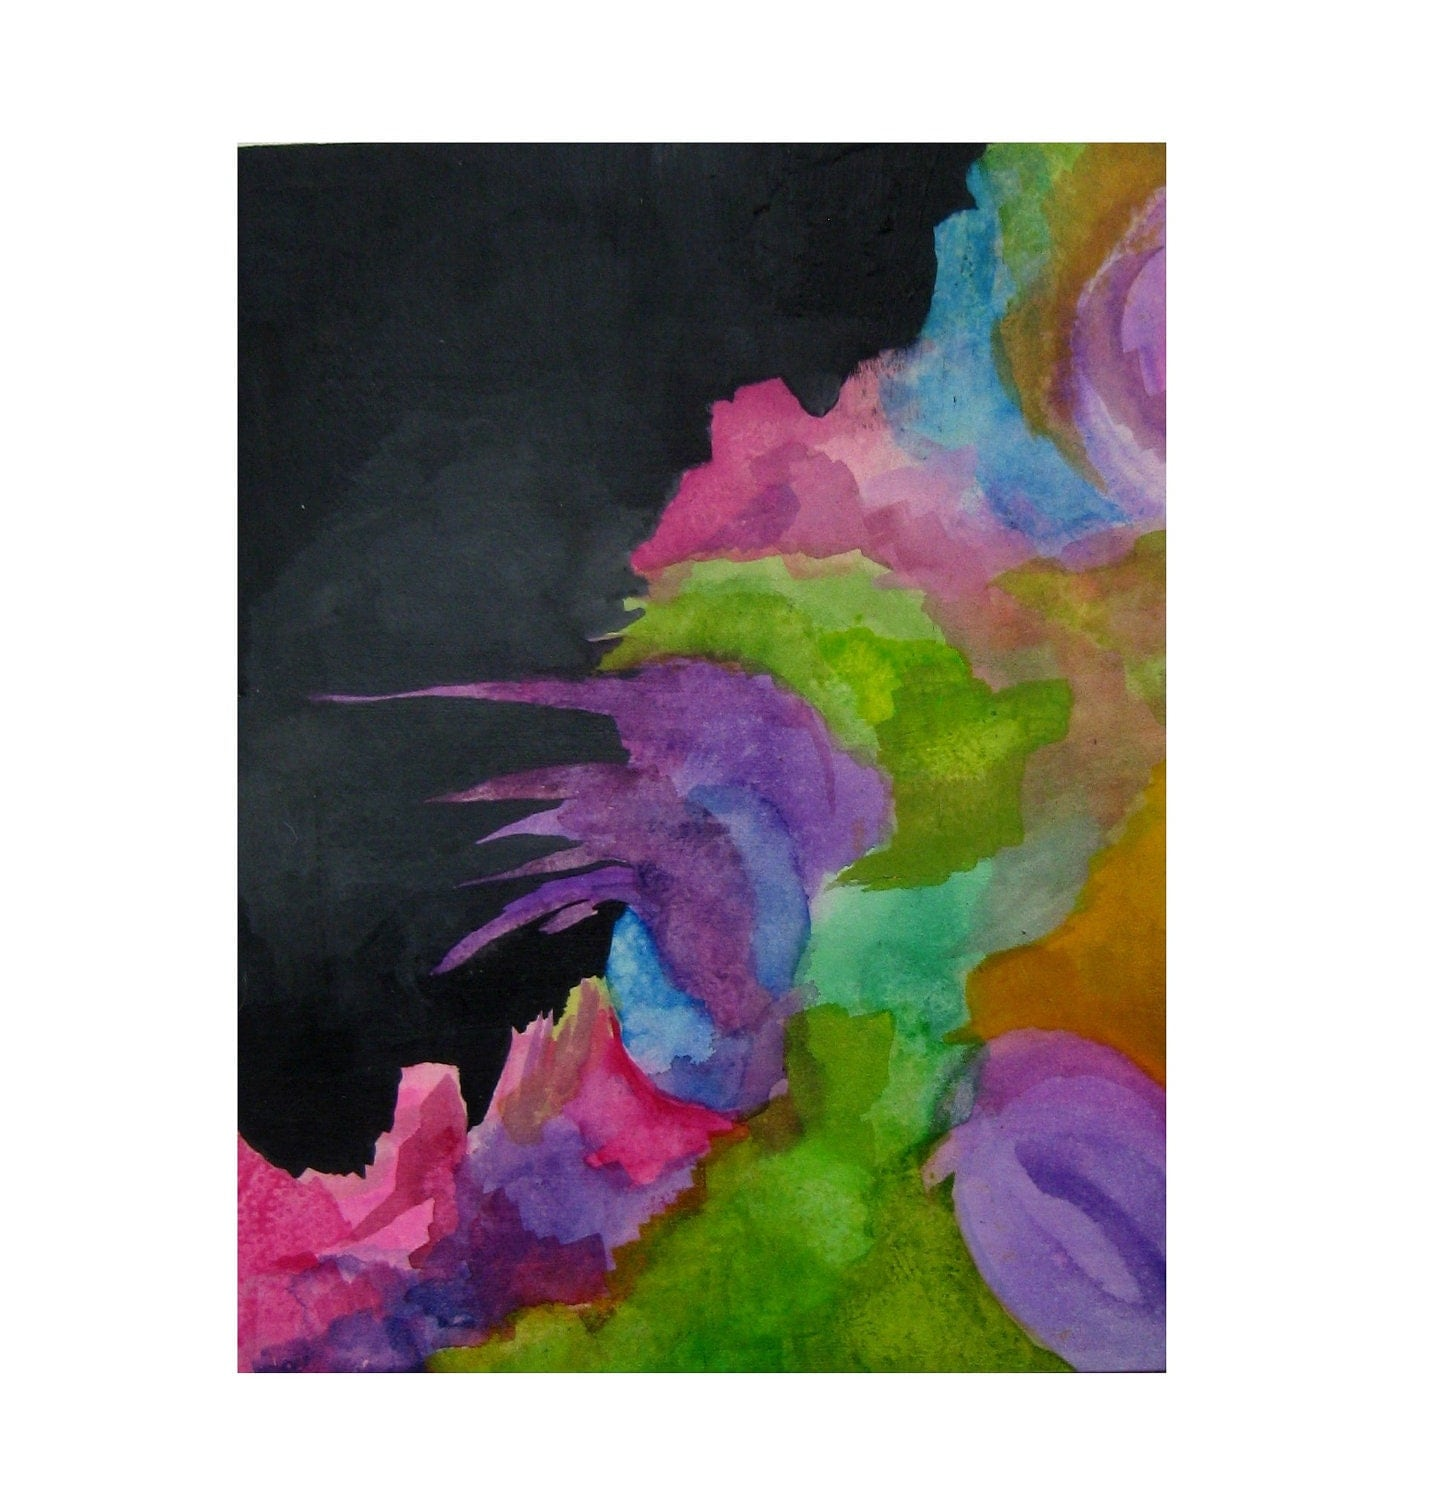 Original Acrylic Painting on Wood Panel Eco Friendly Abstract Nature Inspired Spring Art Decor Black Gray Pink Magenta Purple Green Yellow - MusicalColorStudio